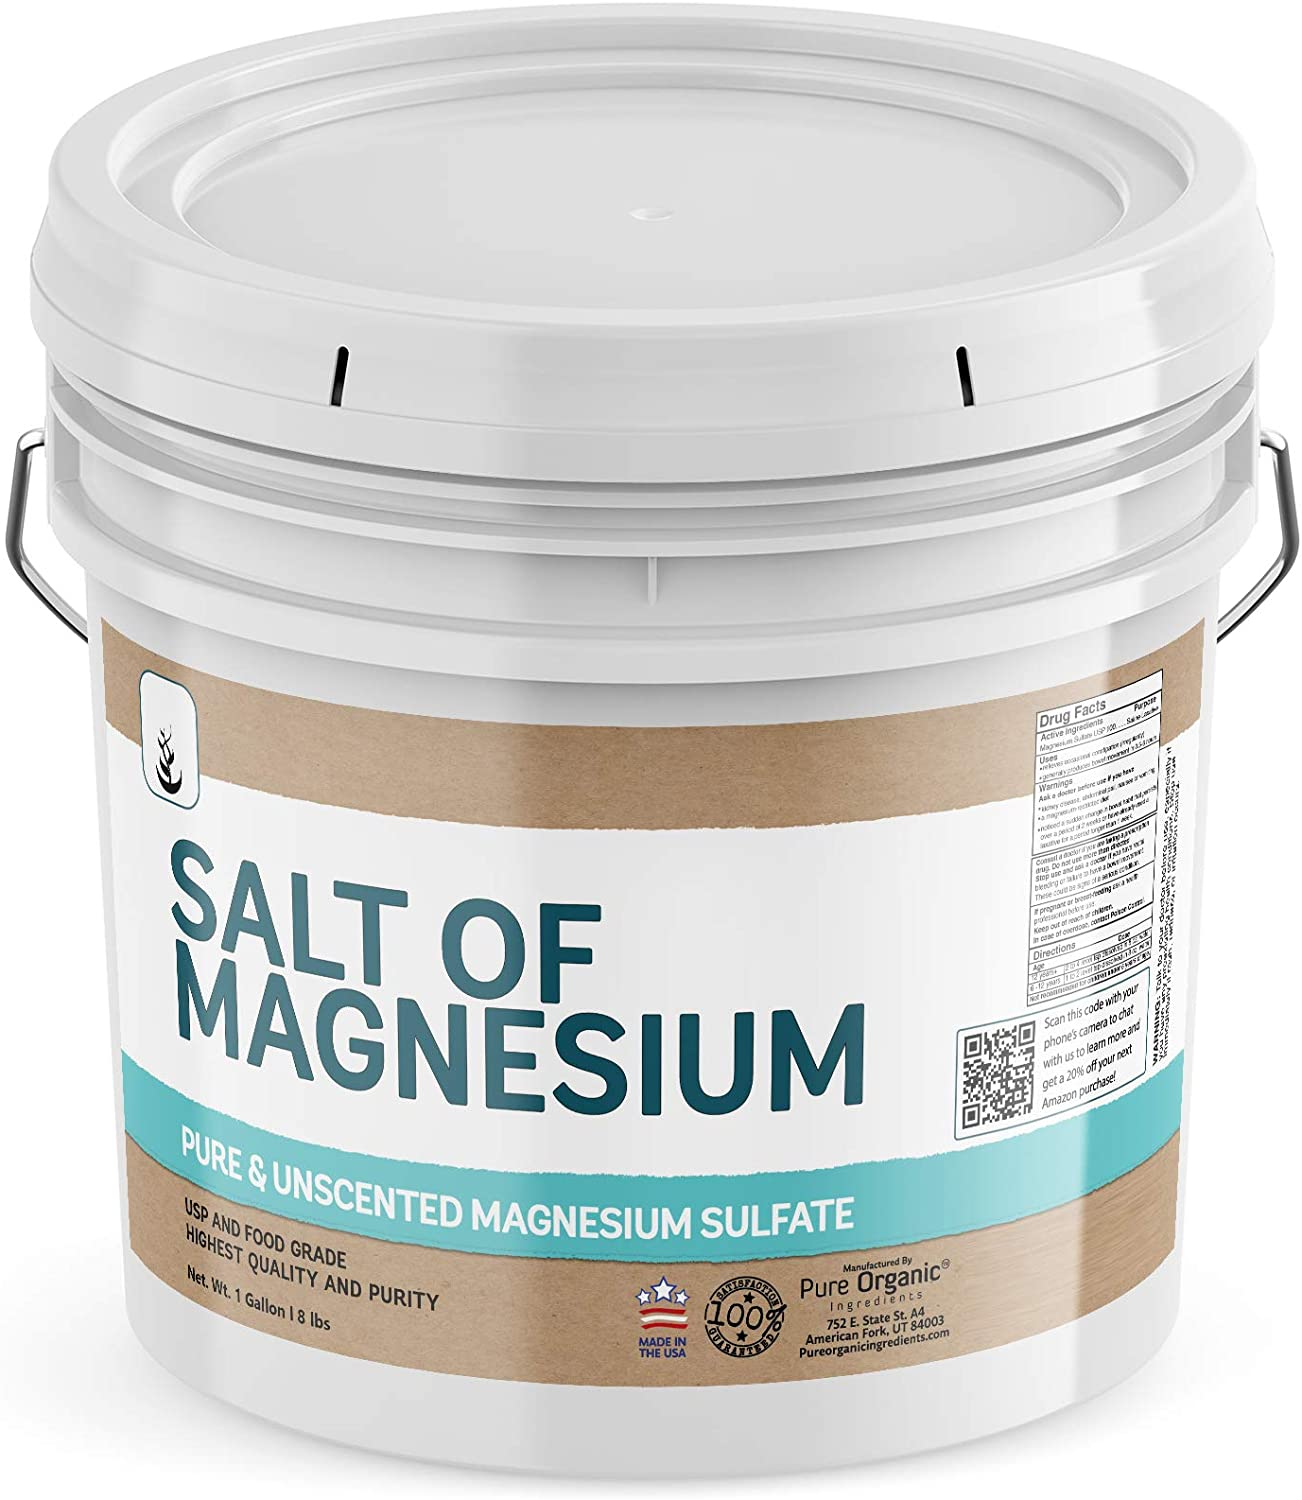 Salt of Magnesium: Pure Epsom Salt (1 Gallon Bucket), USP & Food Grade, Unscented, Soothes Sore Muscles, Natural Exfoliant